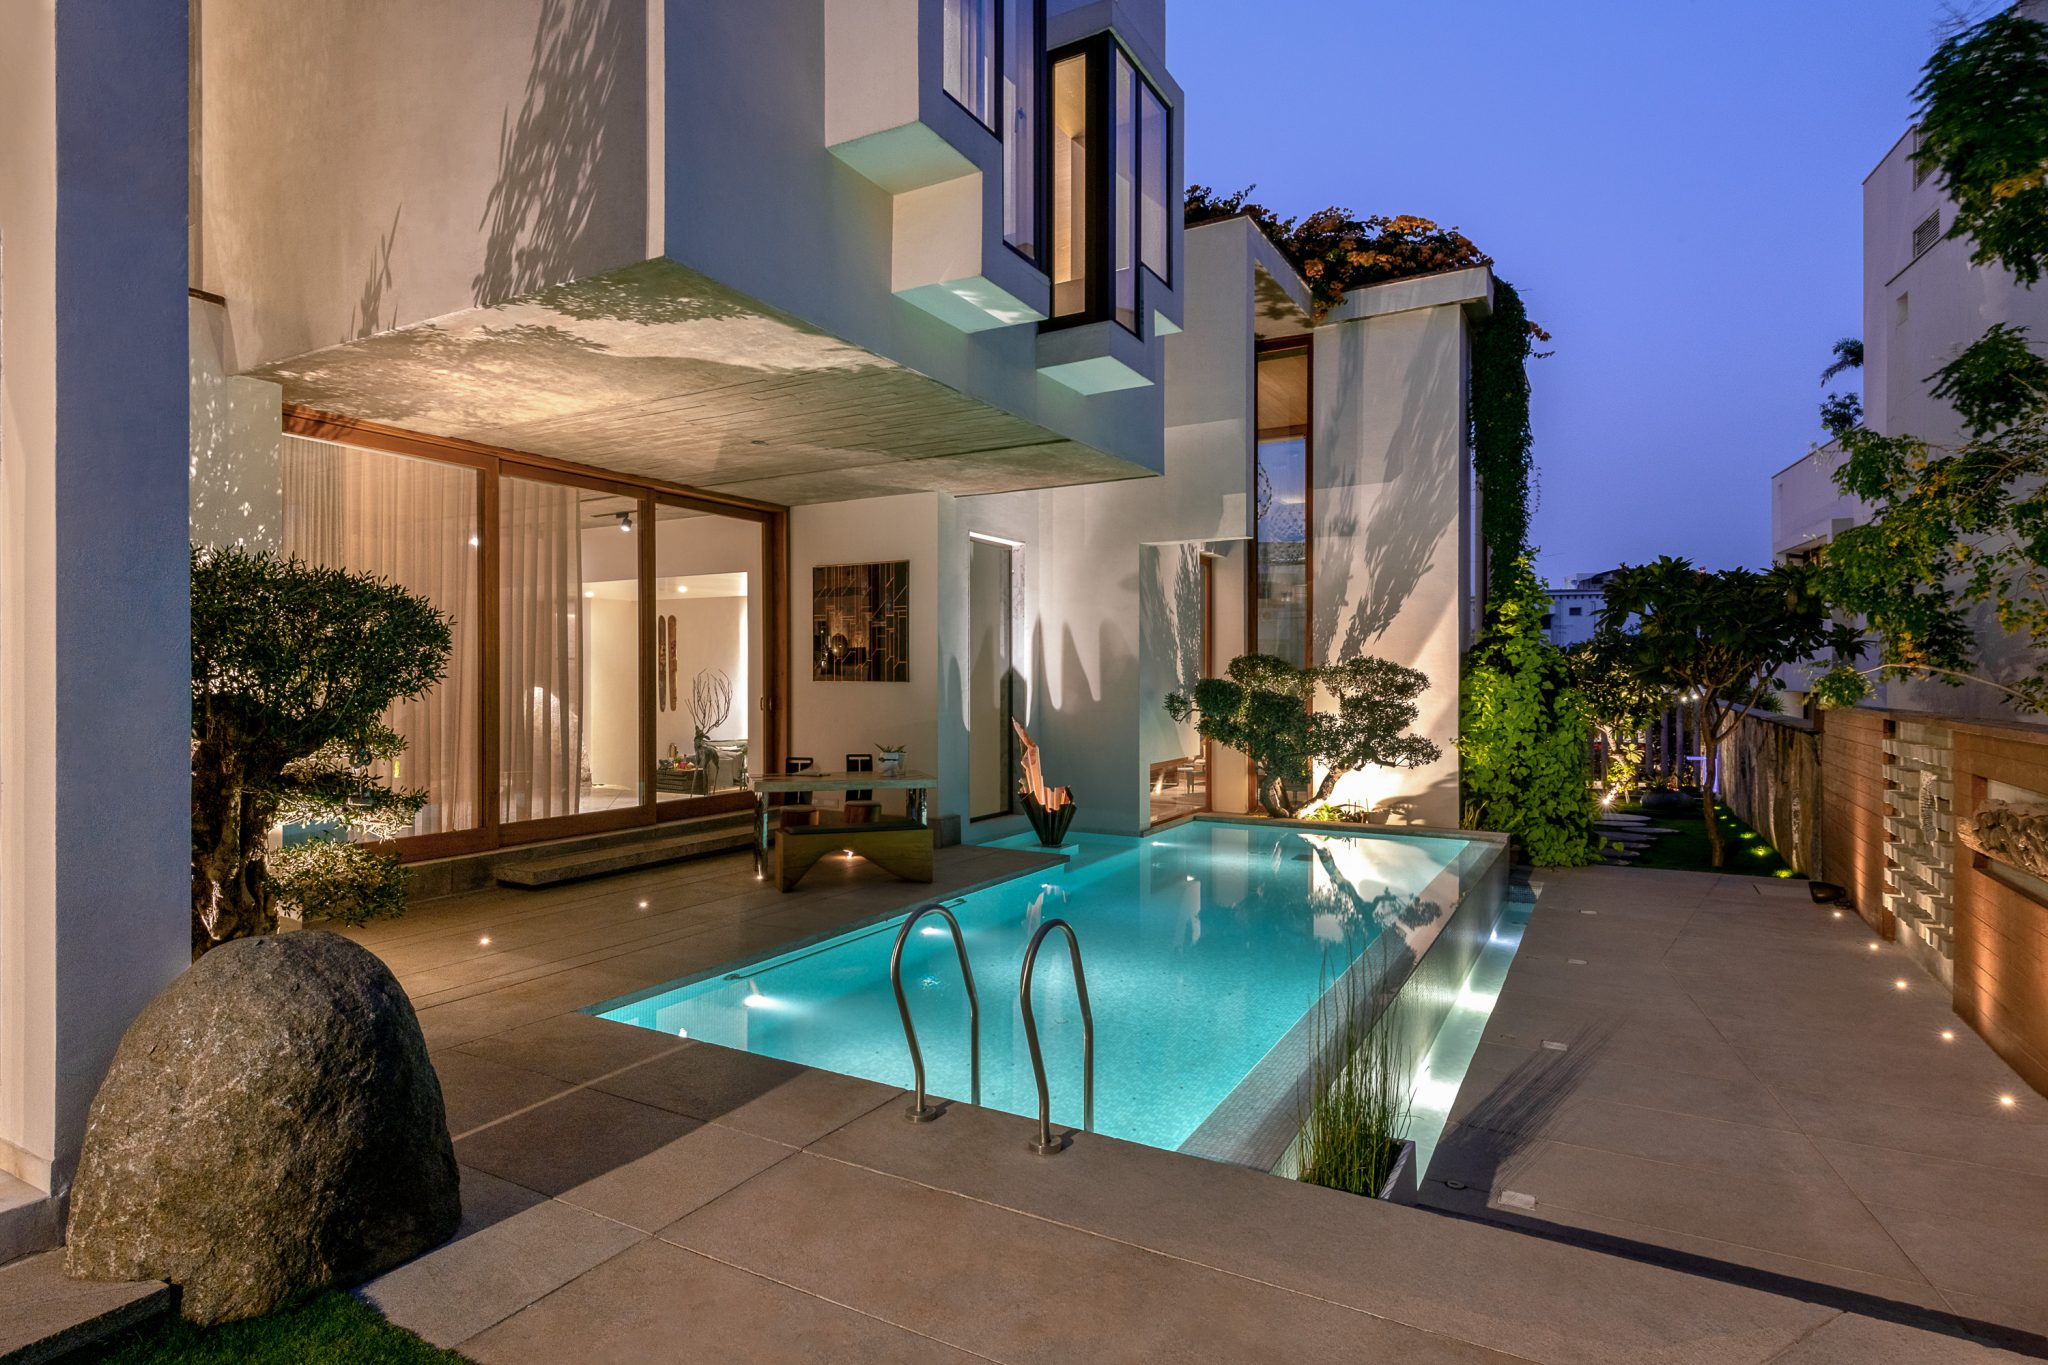 Amazing Pools That Epitomize Your Luxury Outdoor Living at Its Finest